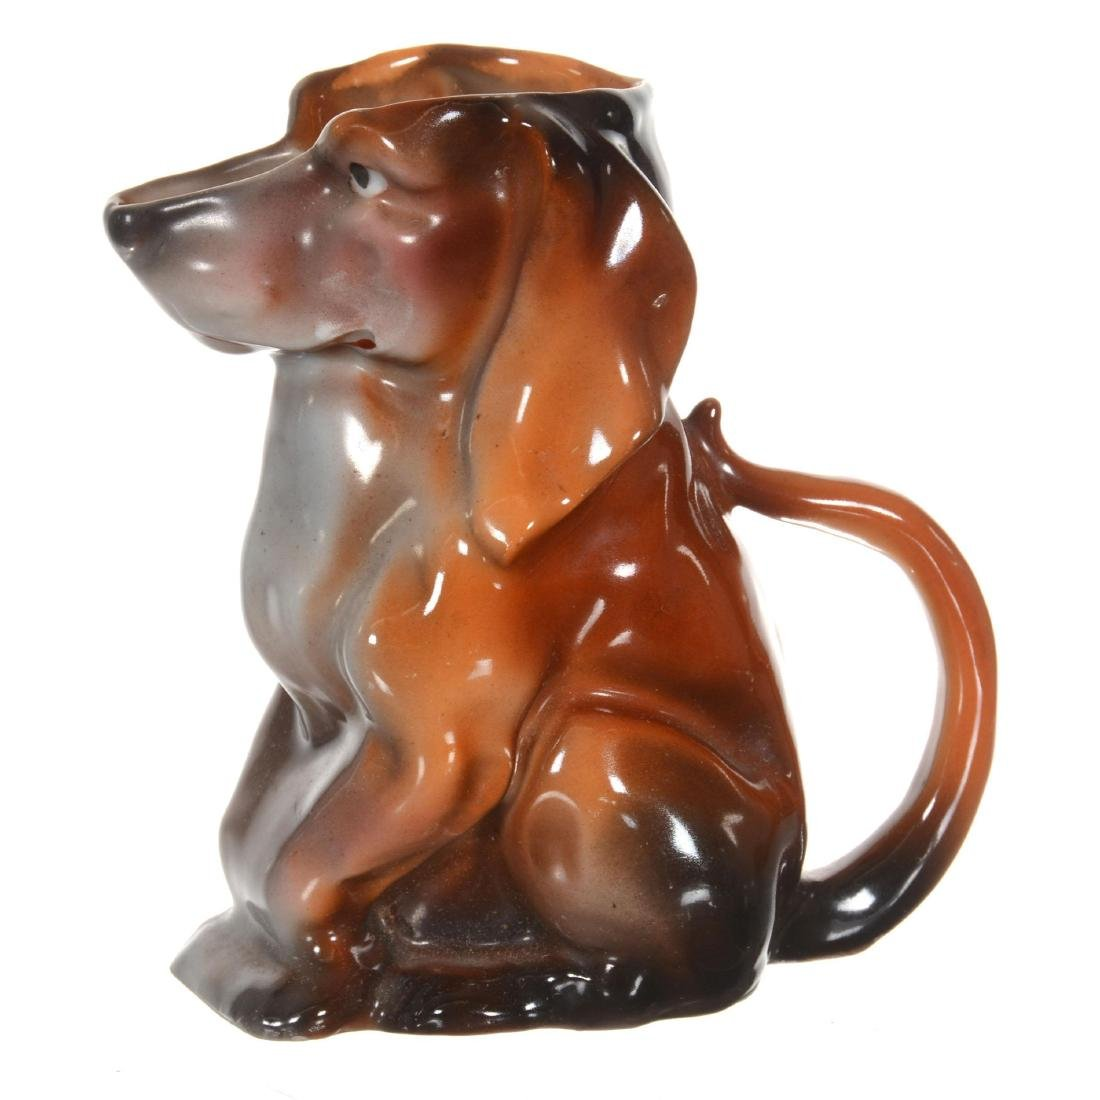 Royal Bayreuth Dachshund Milk Pitcher